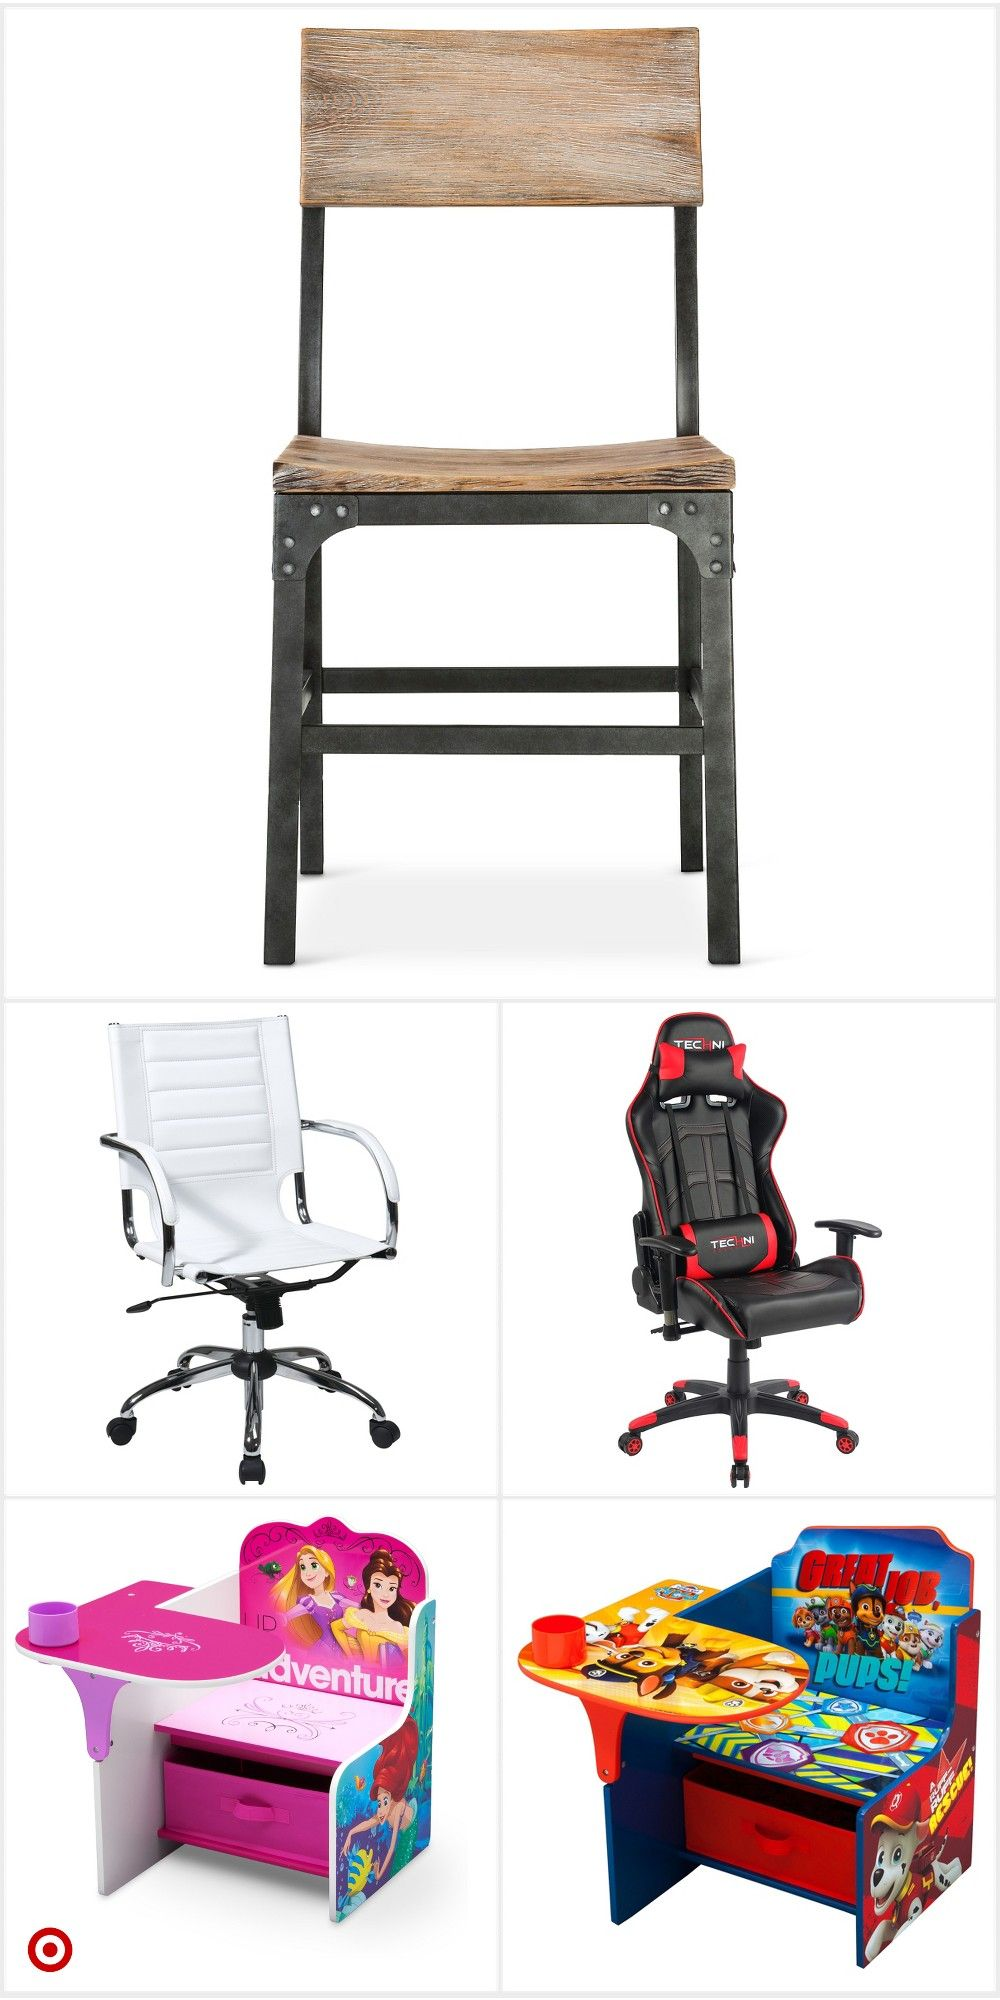 Astounding Shop Target For Kids Chair Desk You Will Love At Great Pabps2019 Chair Design Images Pabps2019Com